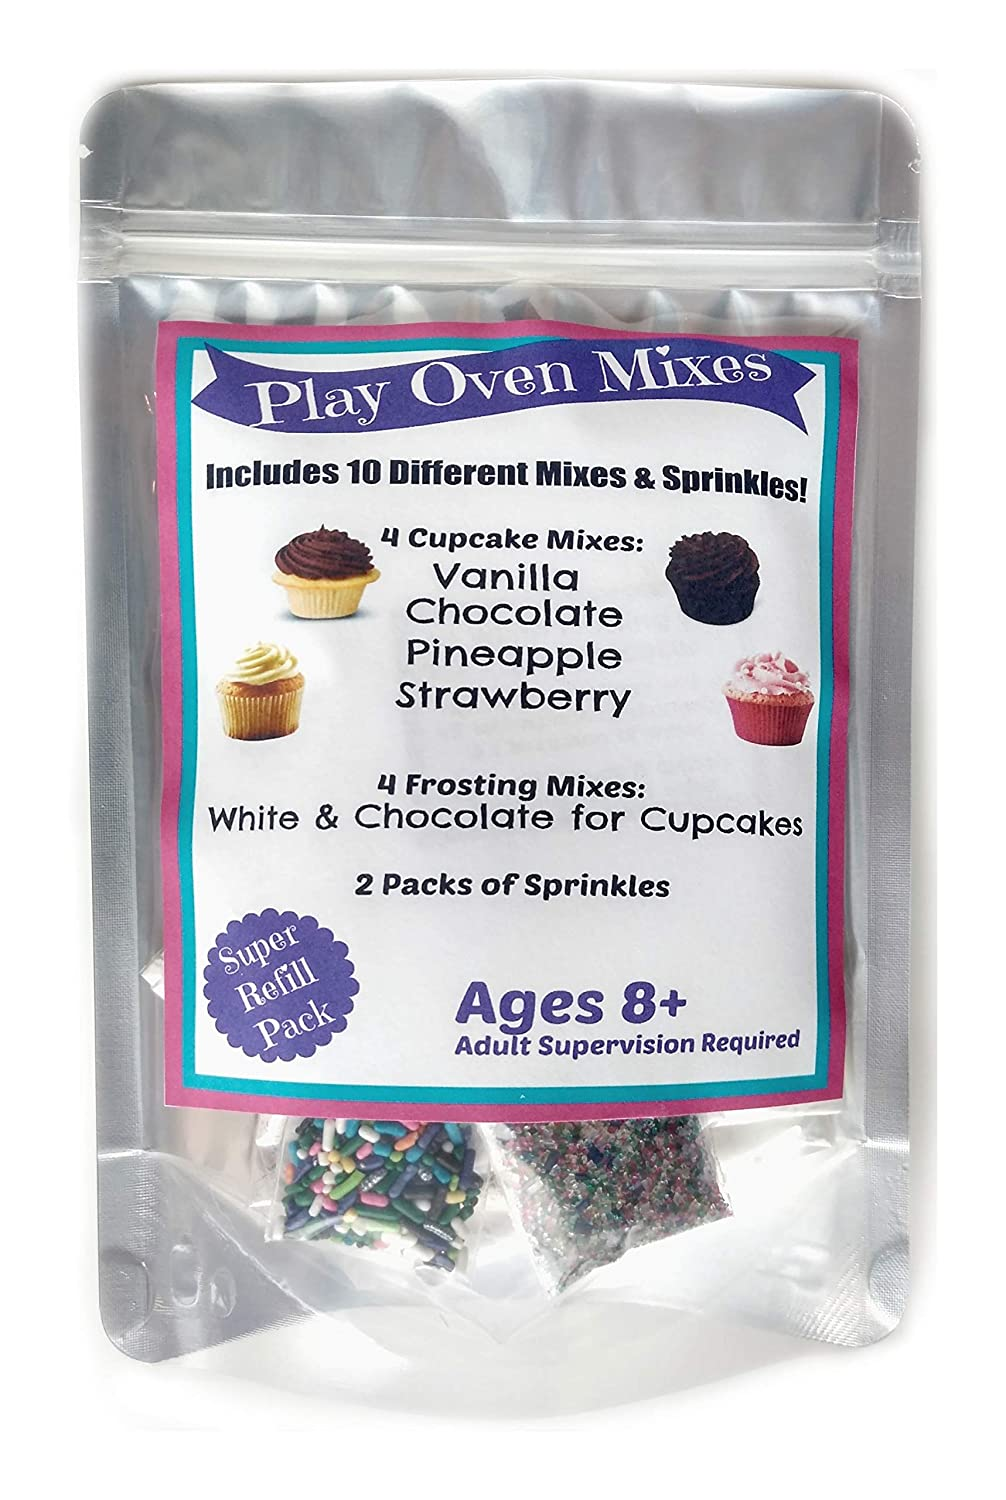 Children's Easy to Bake Oven Mixes Play Toy Real 10 Cupcake Super Pack Mega Refill Kit Vanilla Chocolate Strawberry Pineapple Frosting Sprinkles Ultimate Set Cooking Baking Supplies Net Wt 6.4 oz